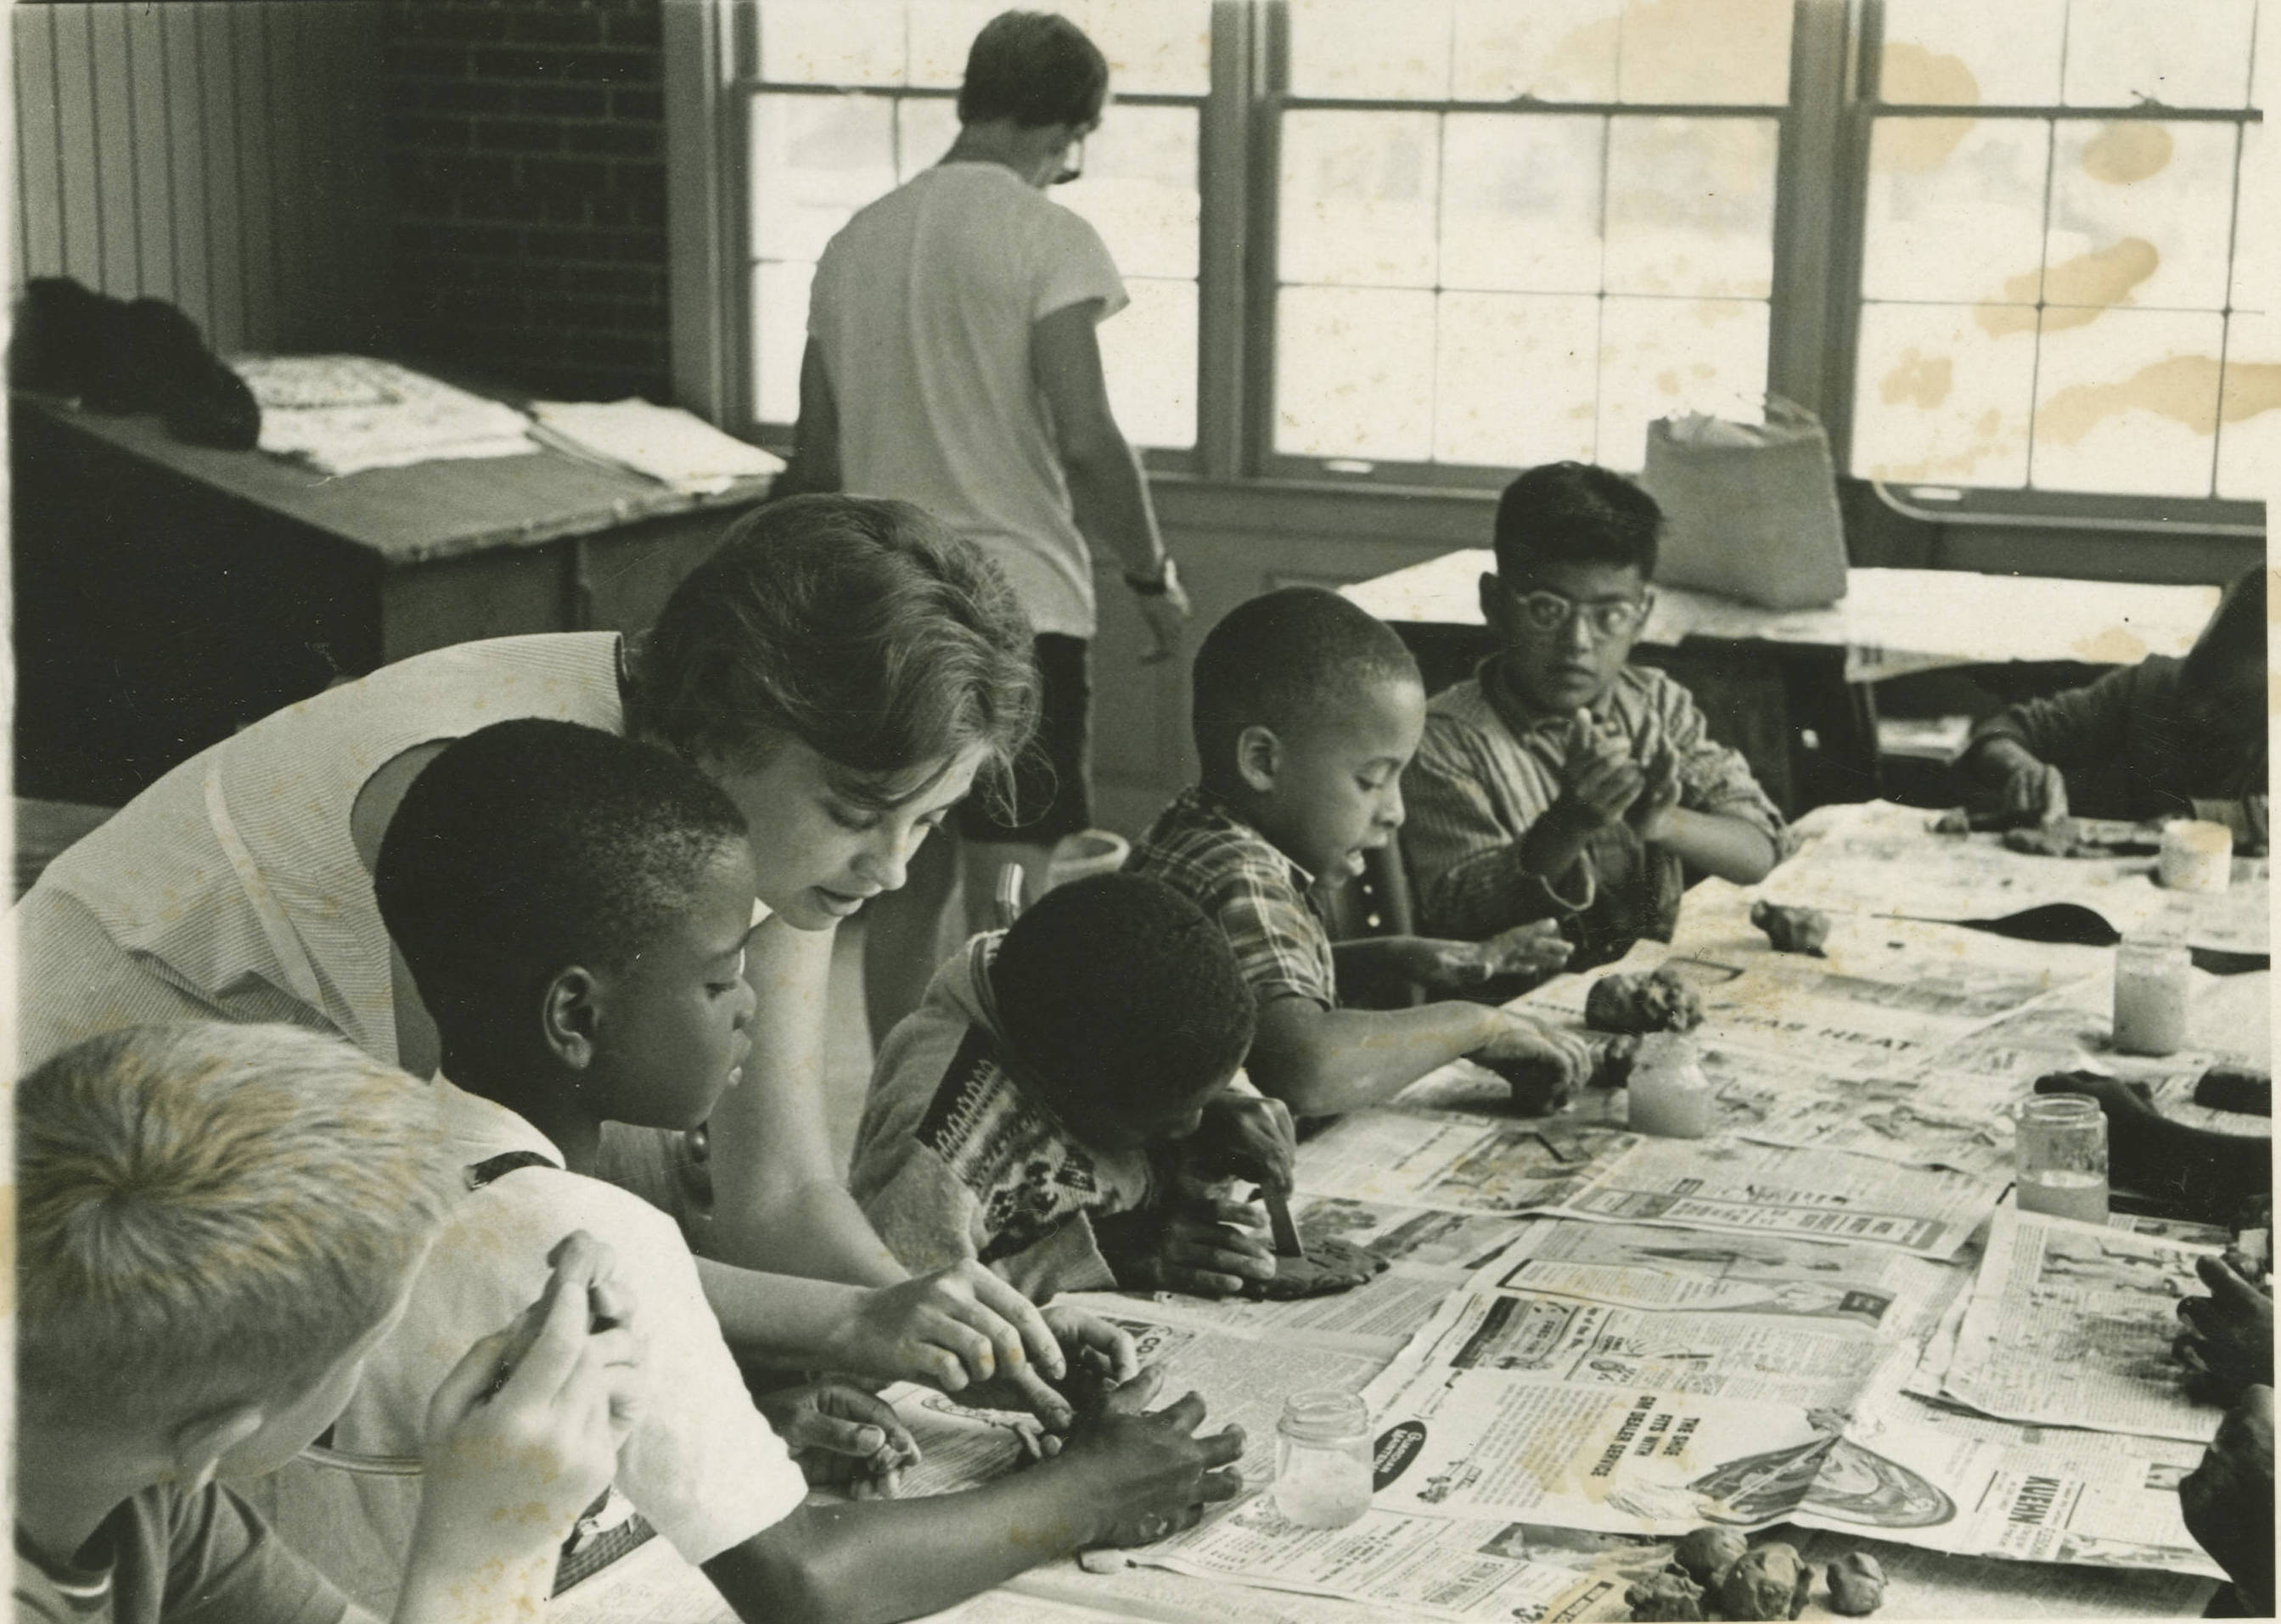 <table class=&quot;lightbox&quot;><tr><td colspan=2 class=&quot;lightbox-title&quot;>Children and Their Instructor</td></tr><tr><td colspan=2 class=&quot;lightbox-caption&quot;>A woman works with a small group of children as part of the Milwaukee Handicraft Project, a public works project developed under the WPA during the Great Depression.</td></tr><tr><td colspan=2 class=&quot;lightbox-spacer&quot;></td></tr><tr class=&quot;lightbox-detail&quot;><td class=&quot;cell-title&quot;>Source: </td><td class=&quot;cell-value&quot;>From the Wisconsin Arts Project of the WPA Collection. Archives, University of Wisconsin-Milwaukee Libraries.<br /><a href=&quot;https://collections.lib.uwm.edu/digital/collection/wpa/id/1703/rec/46&quot; target=&quot;_blank&quot;>University of Wisconsin-Milwaukee Libraries</a></td></tr><tr class=&quot;filler-row&quot;><td colspan=2>&nbsp;</td></tr></table>